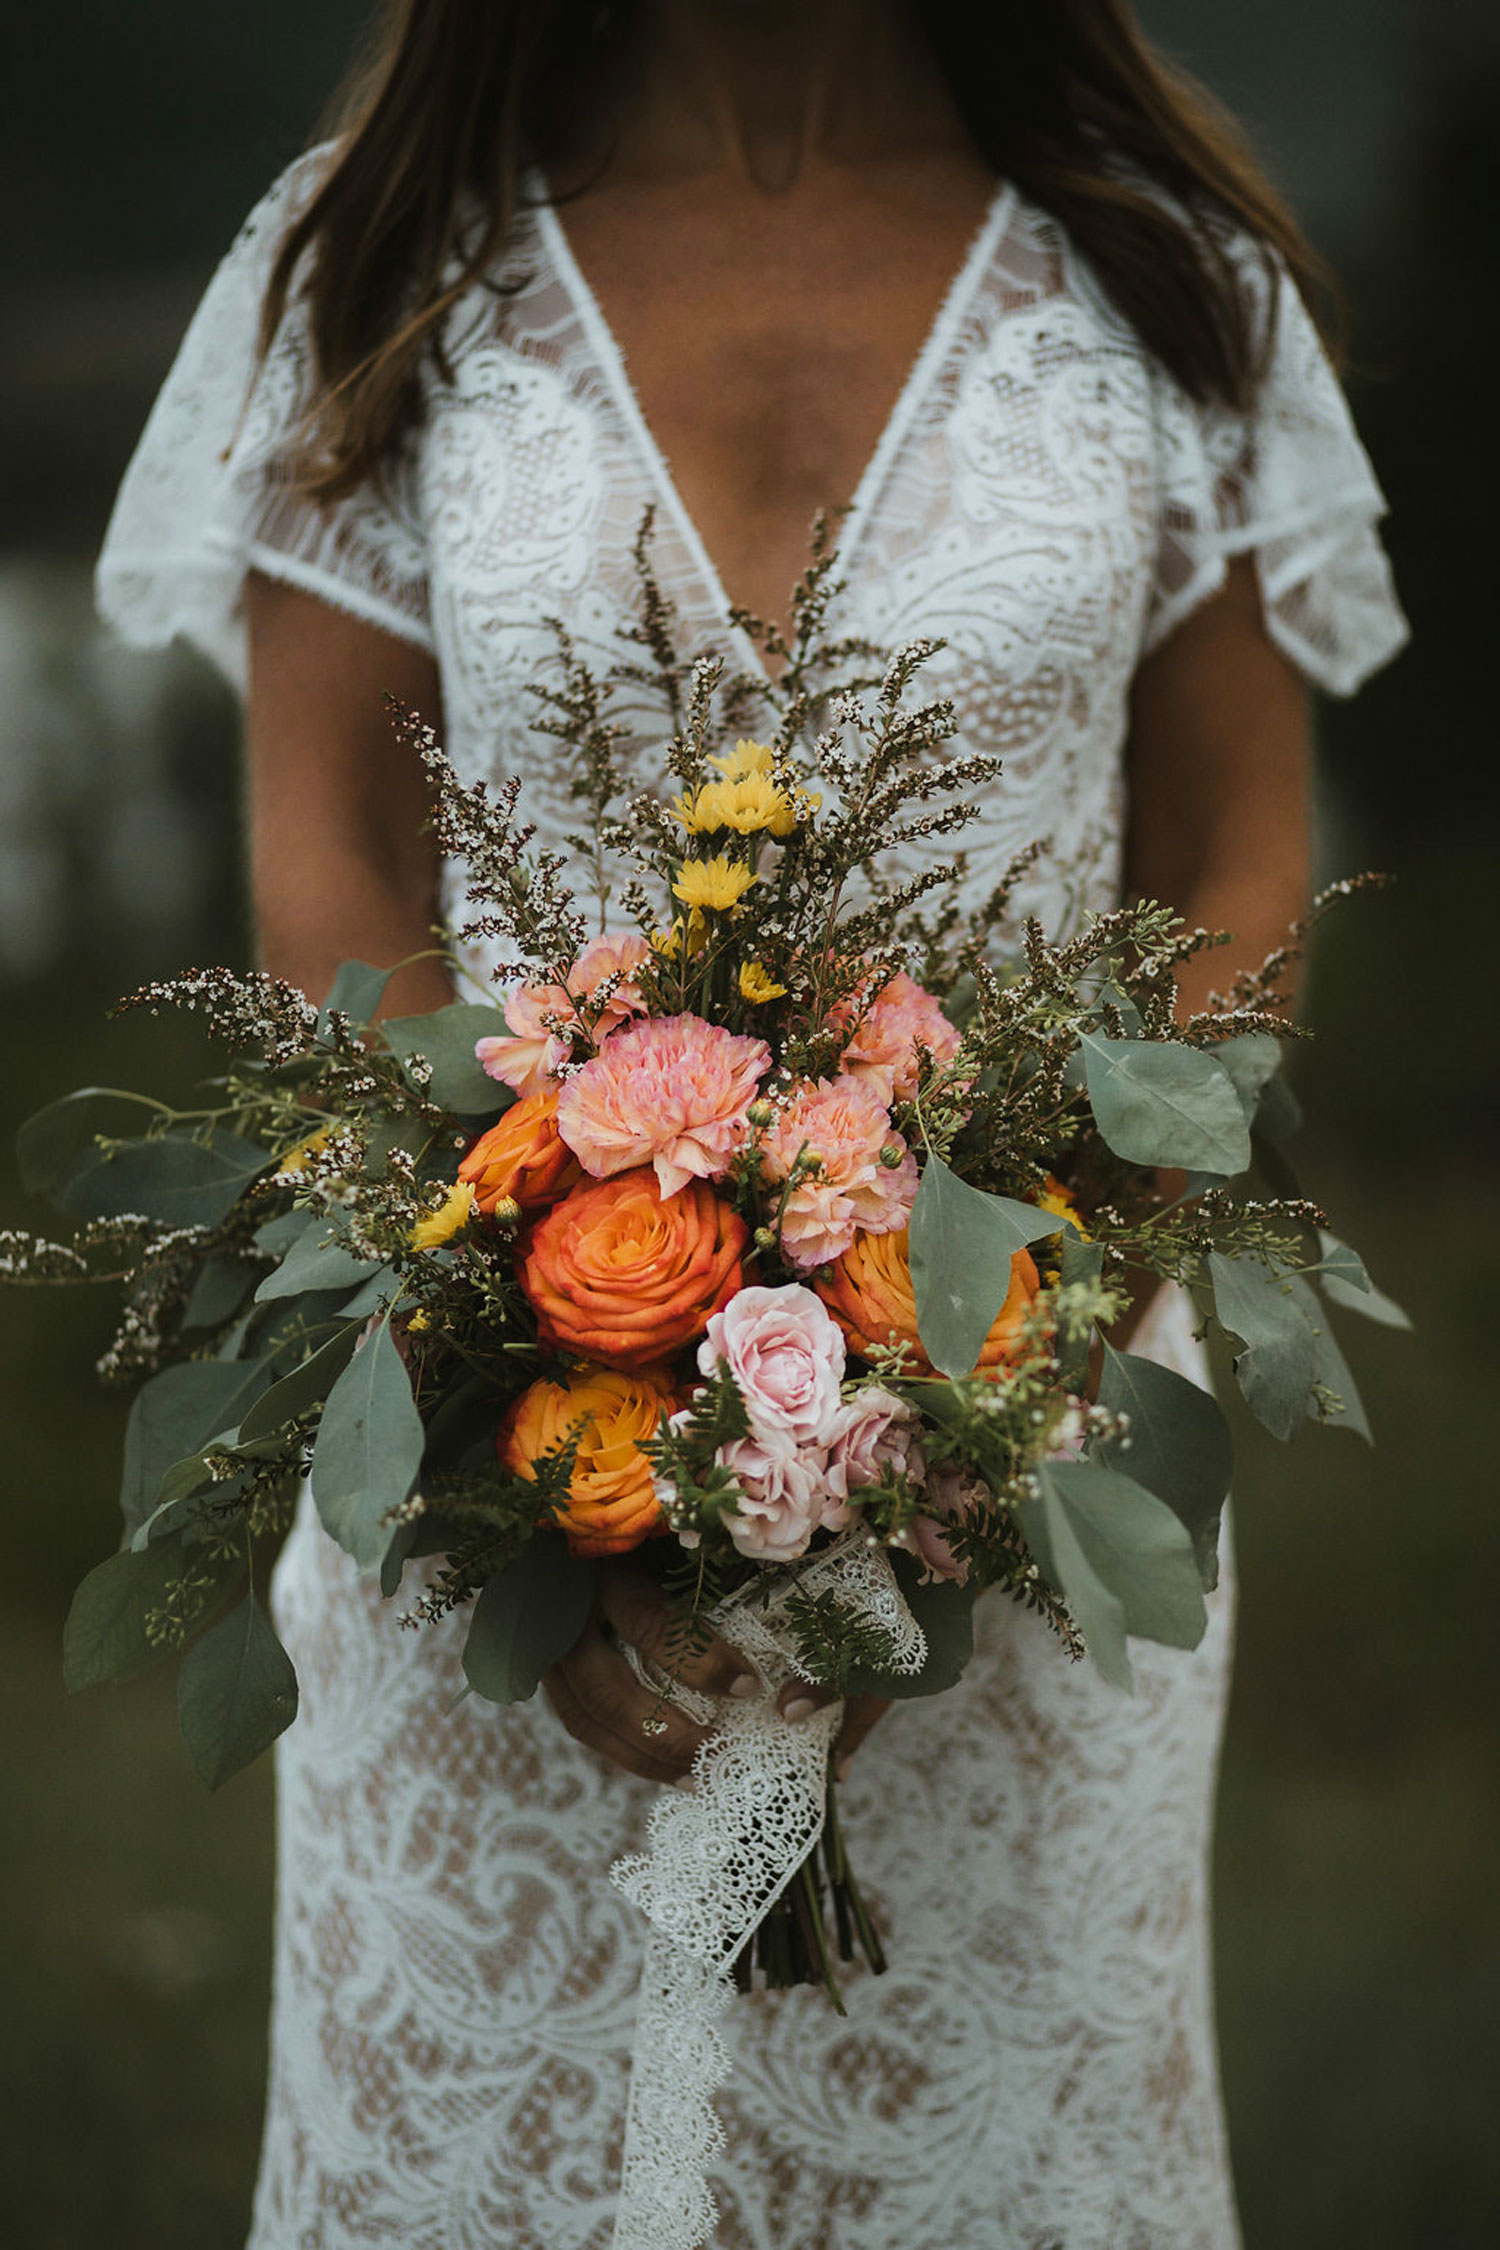 Boho Bride with hand-tied bouquet - fresh flowers